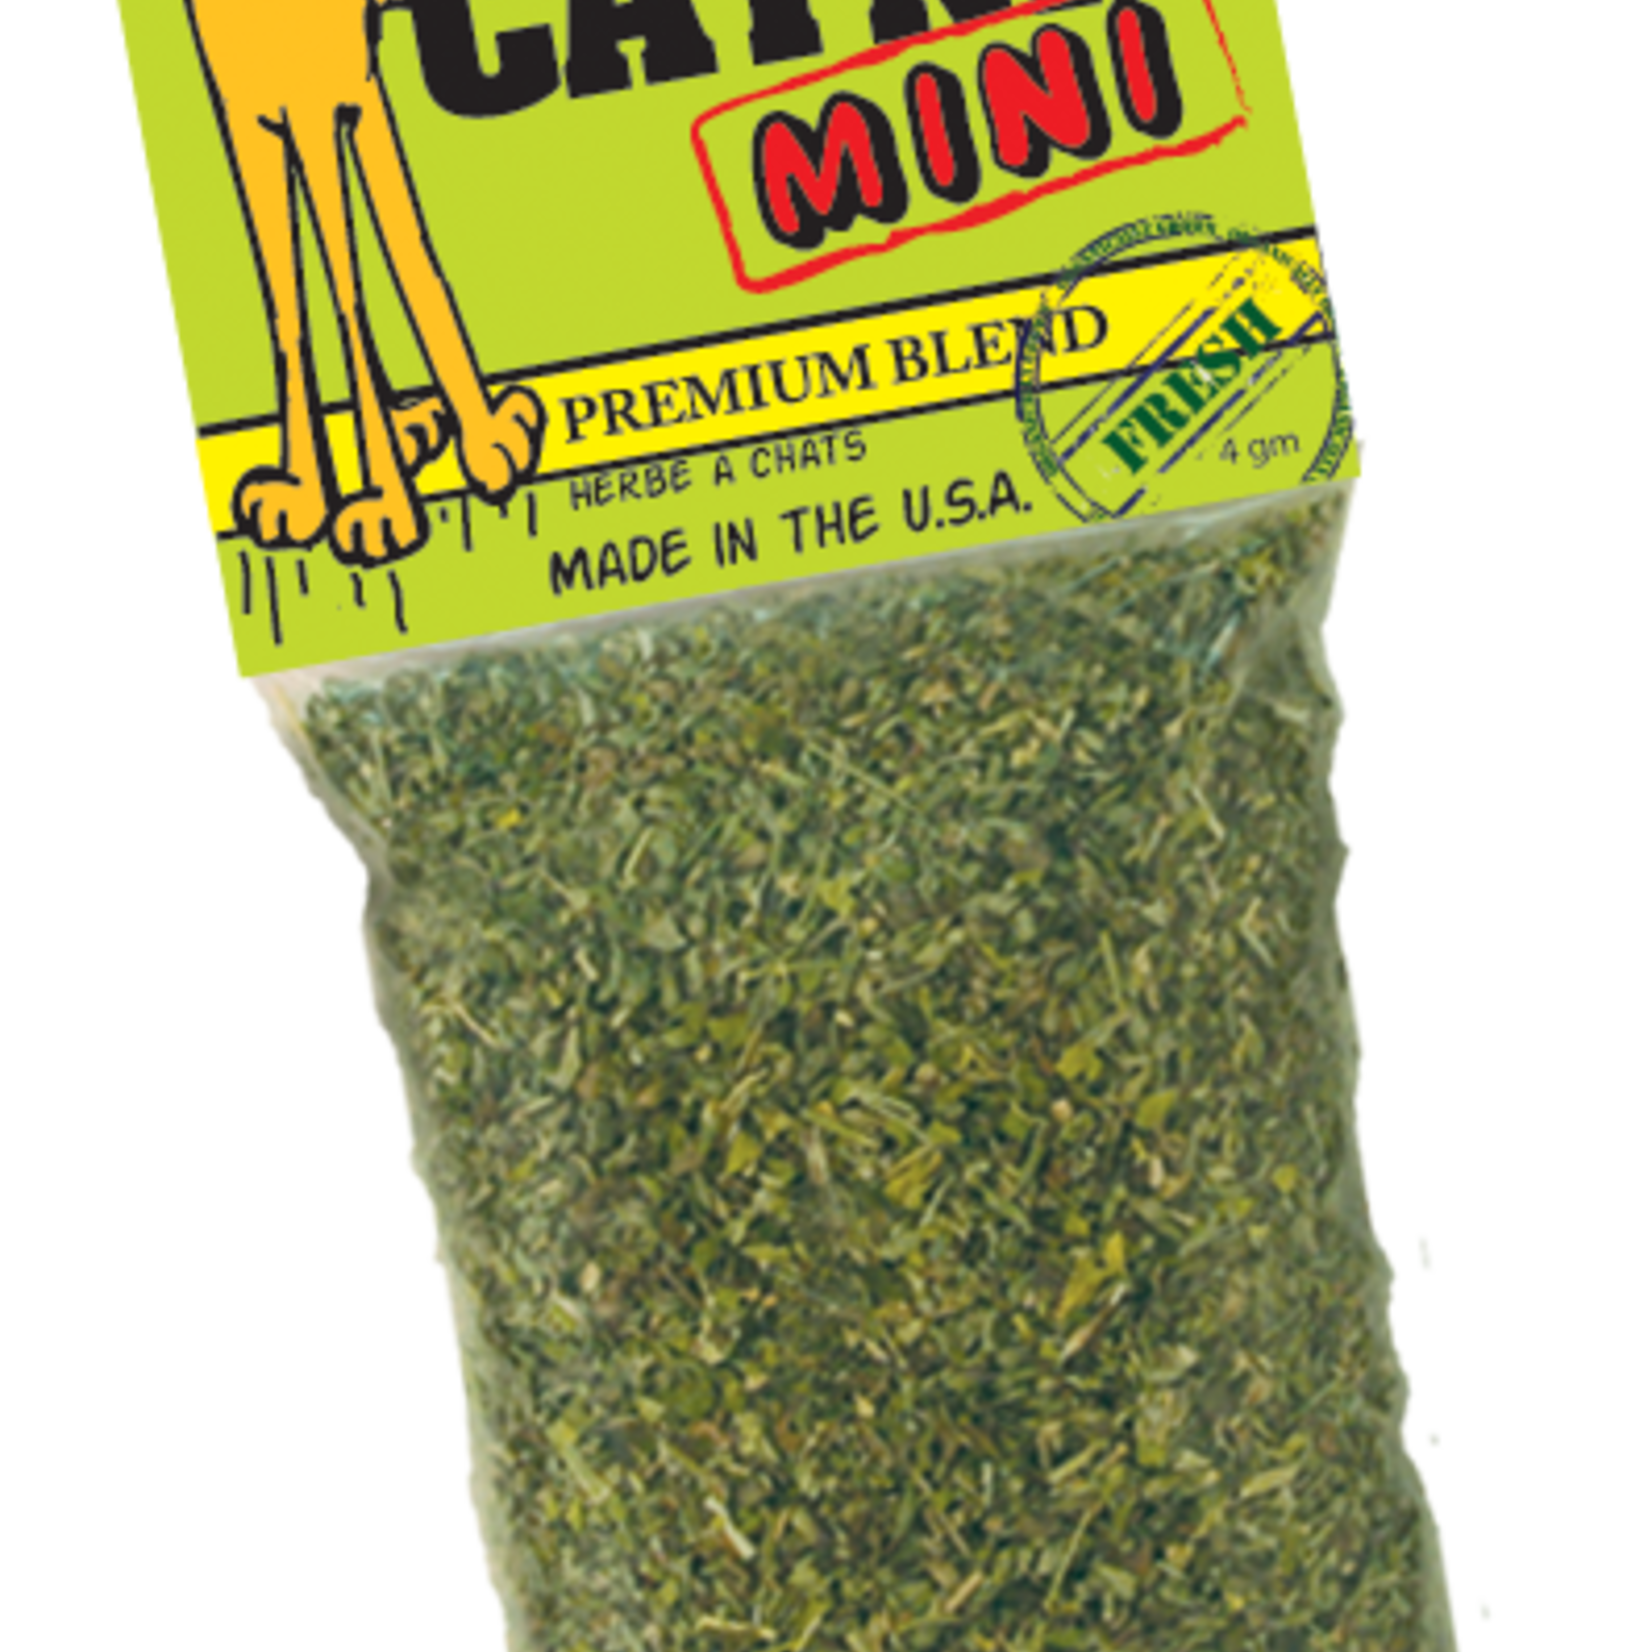 Ducky World Inc. Ducky World Yeow! Catnip Mini - Misdemeanor Size